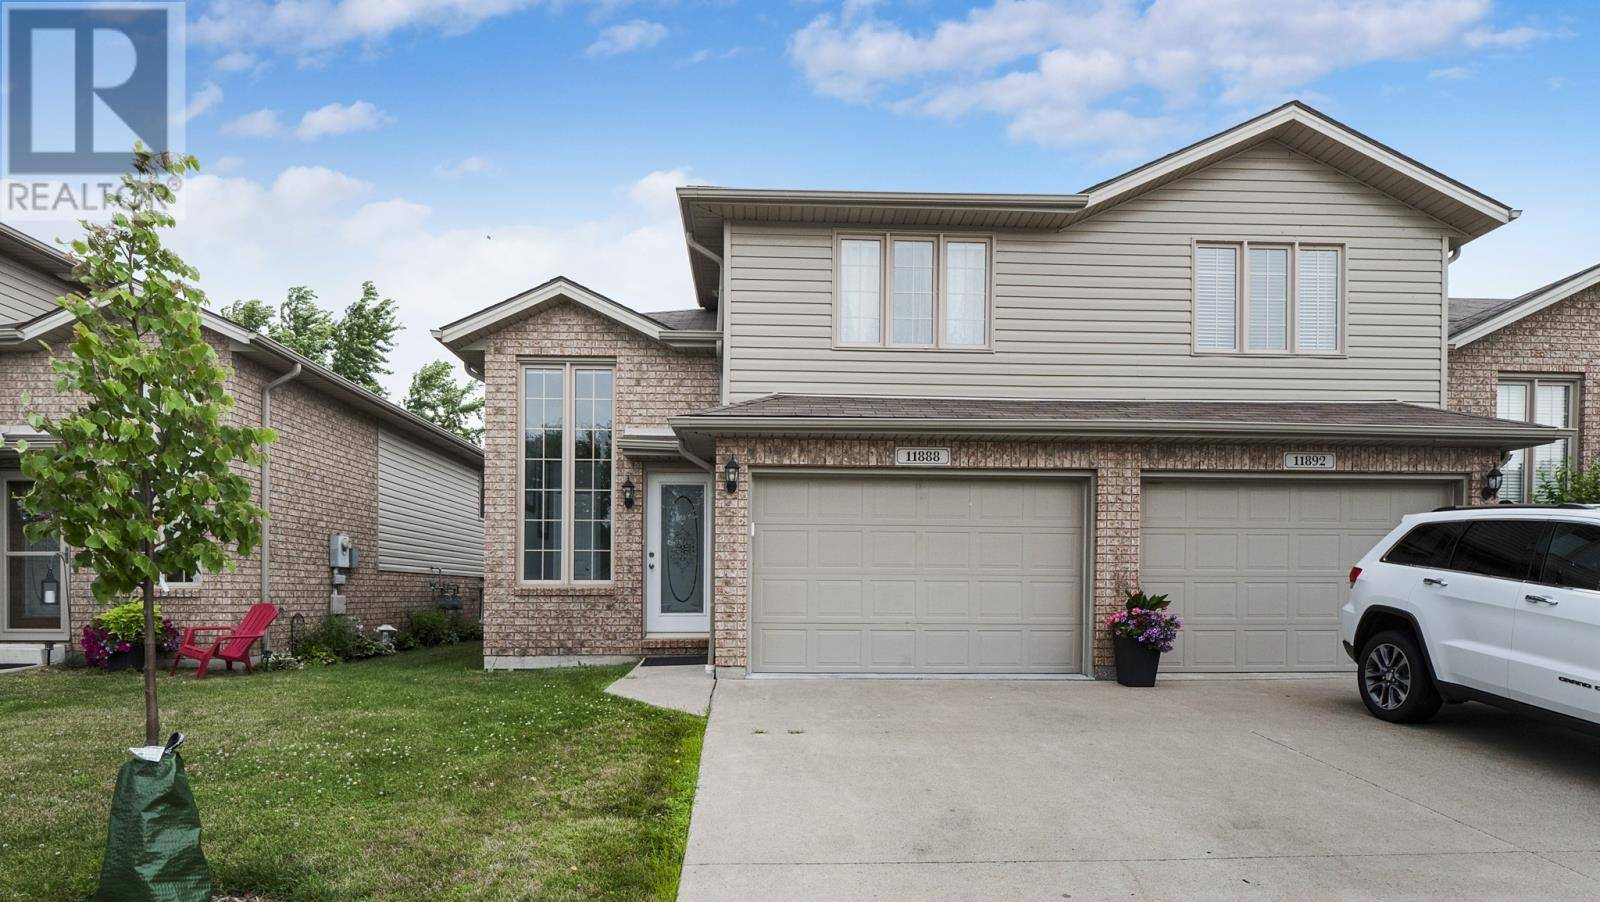 Townhouse for sale at 11888 Rockland  Windsor Ontario - MLS: 19025118